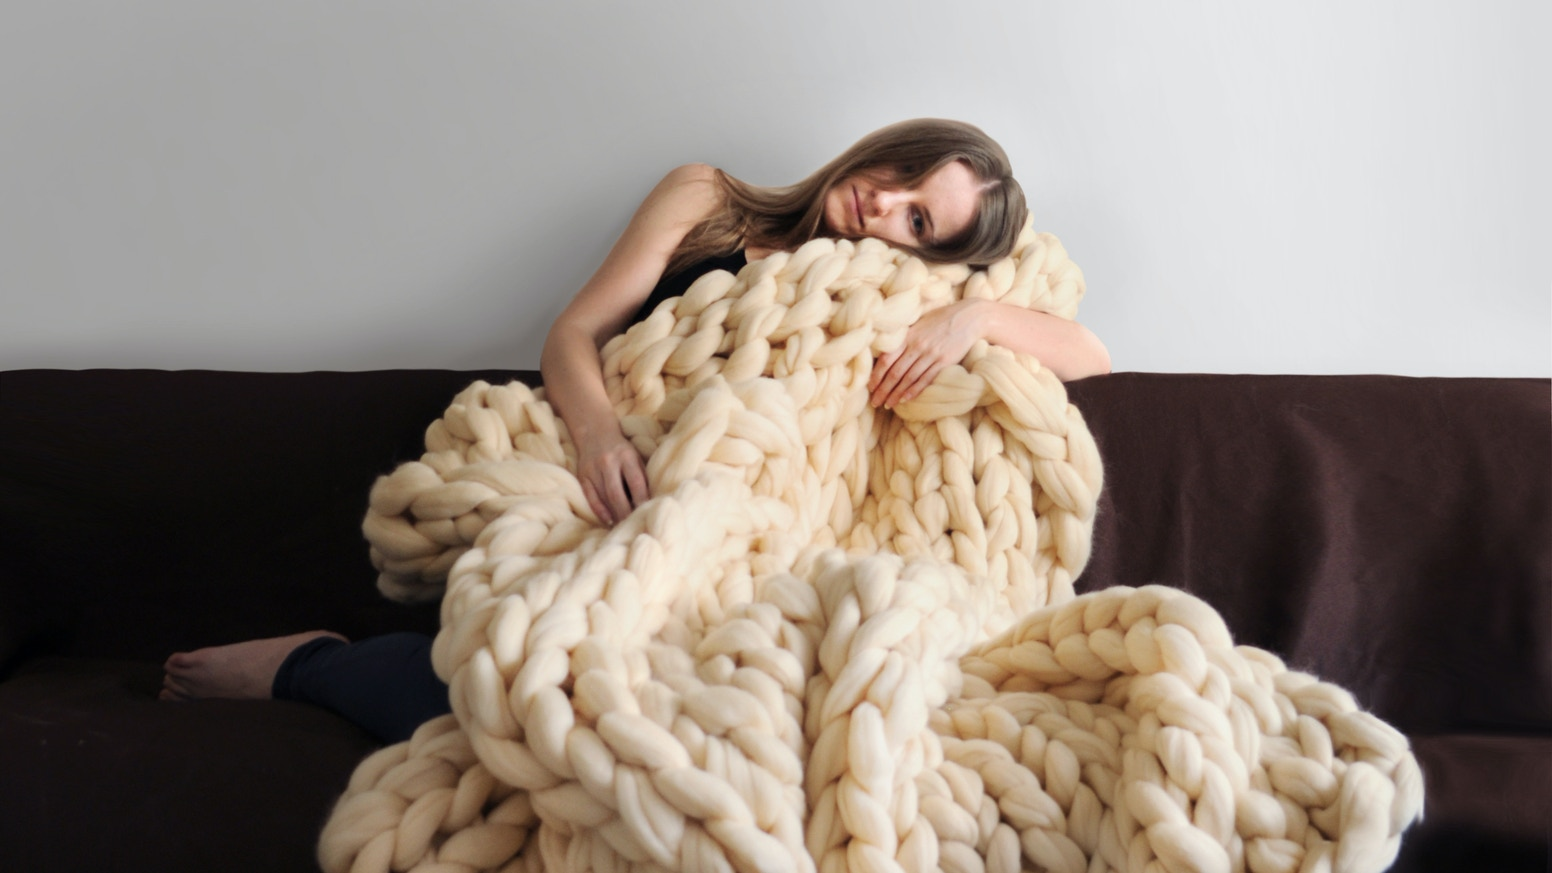 Super soft and smooth 100% merino wool blankets by Ohhio. They will warm you up on chilly evenings, and will be pleasant reminder of sunnier spring days.